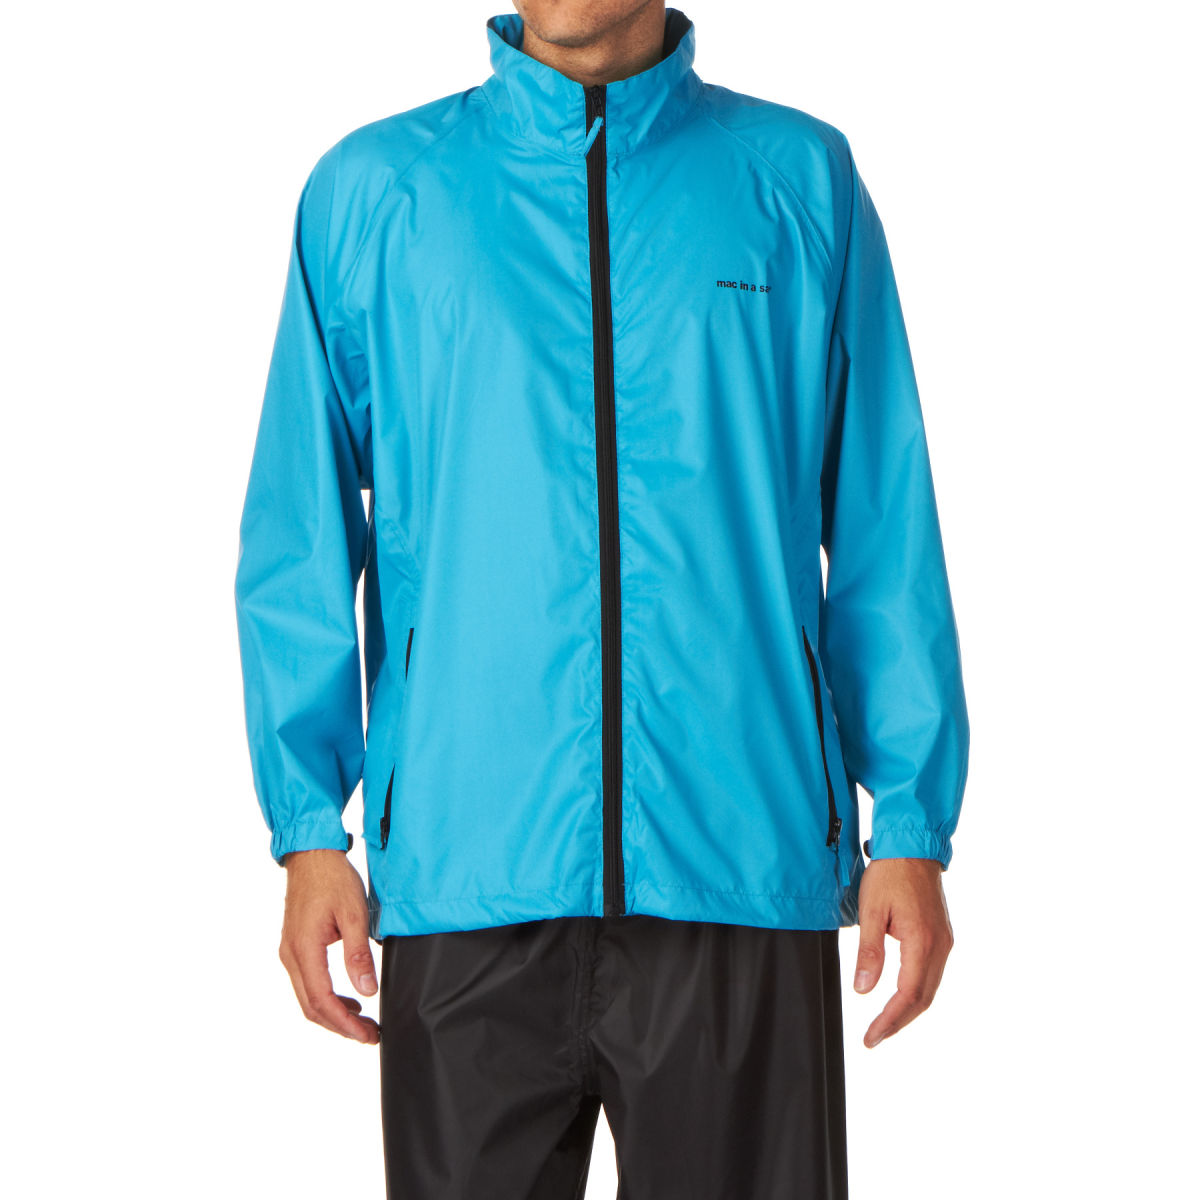 Mac in a Sac Unisex MIAS ORIGIN Highly Waterproof & Breathable Packaway Jacket BRIGHT BLUE